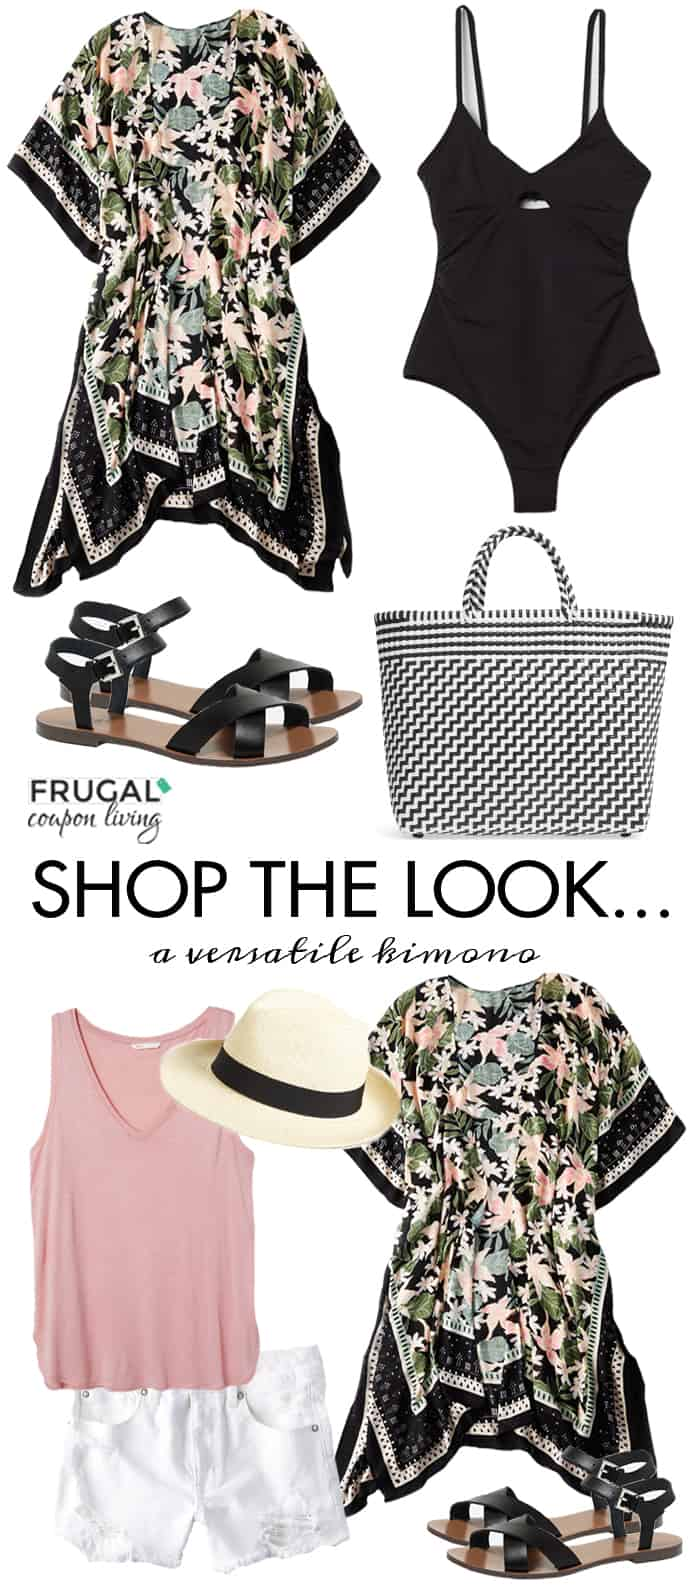 We wanted to take an outfit from the beach to the evening out with this versatile kimono outfit. We paired this adorable floral kimono with a fun swimsuit and hat and later pair with a tank and cut offs. . #frugalcouponliving #fashion #frugalfashionfriday #frugalcouponliving #summerfashion #springfashion #springoutfit #summeroutfit #outfit #summerstyle #springstyle #fashionfriday #ootd #beachoutfit #blackkimono #floralkimono #kimono #beachstyle #pooloutfit